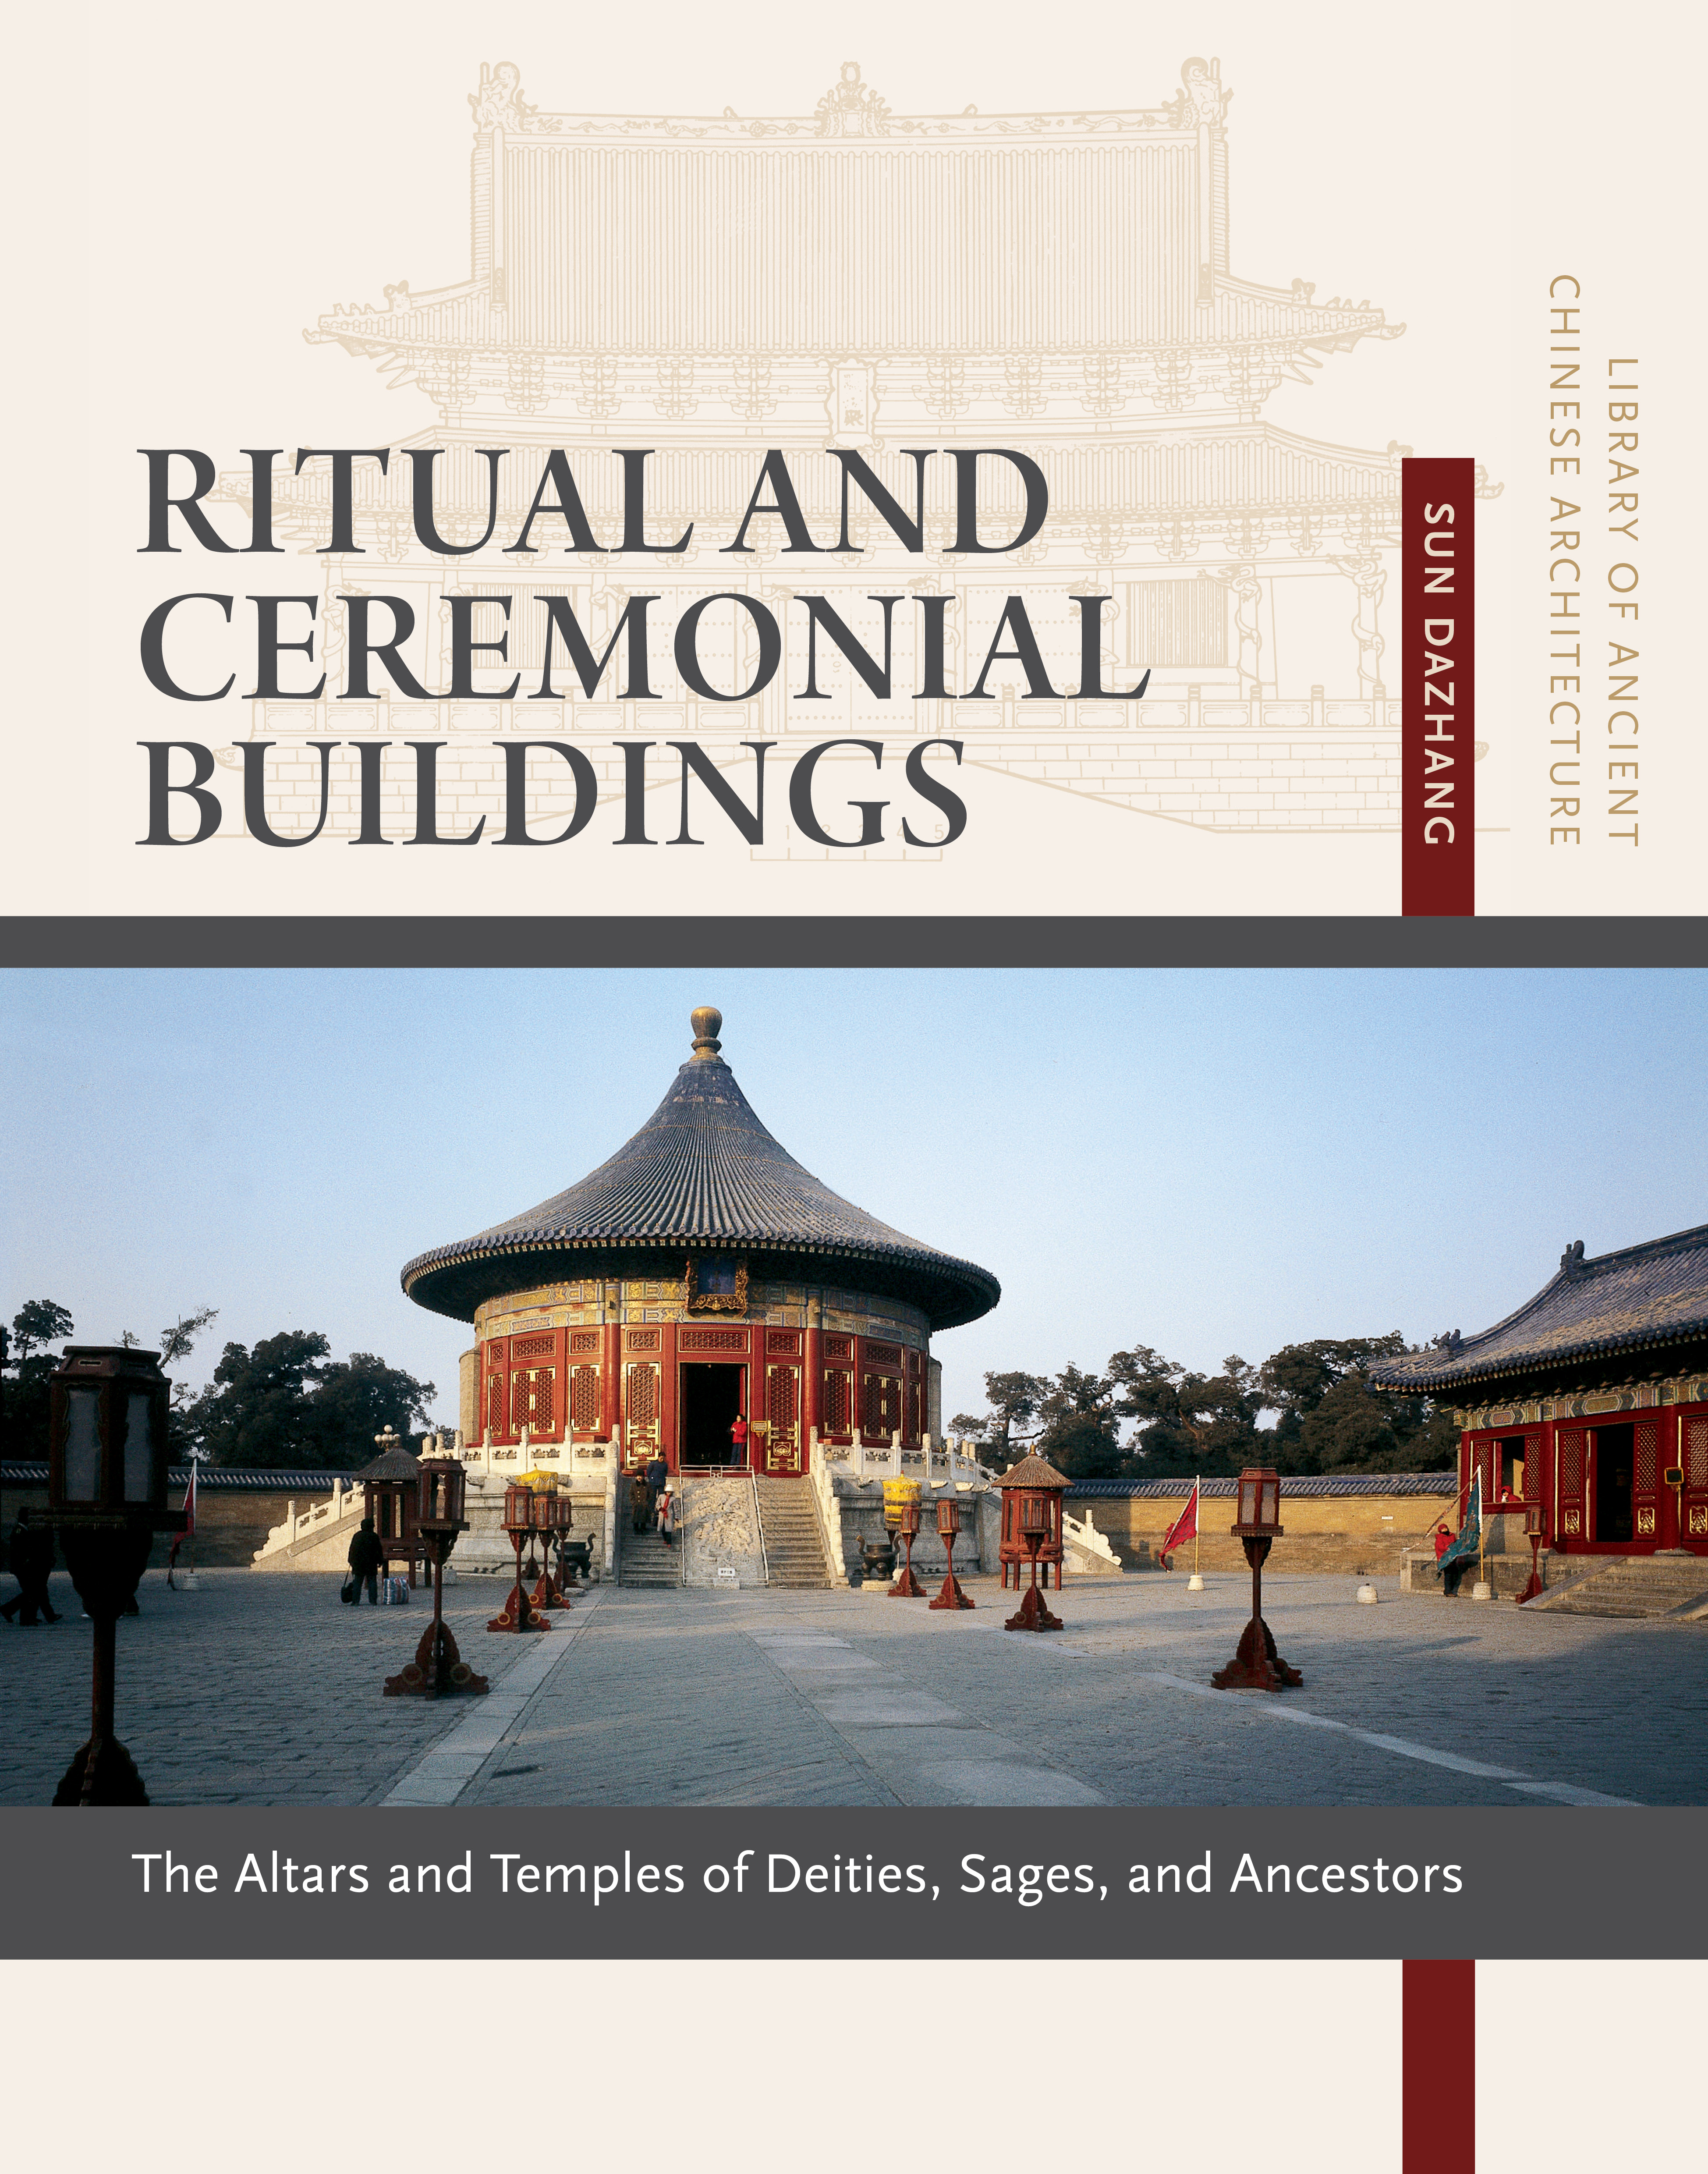 Ritual and Ceremonial Buildings: Altars and Temples of Deities, Sages, and Ancestors